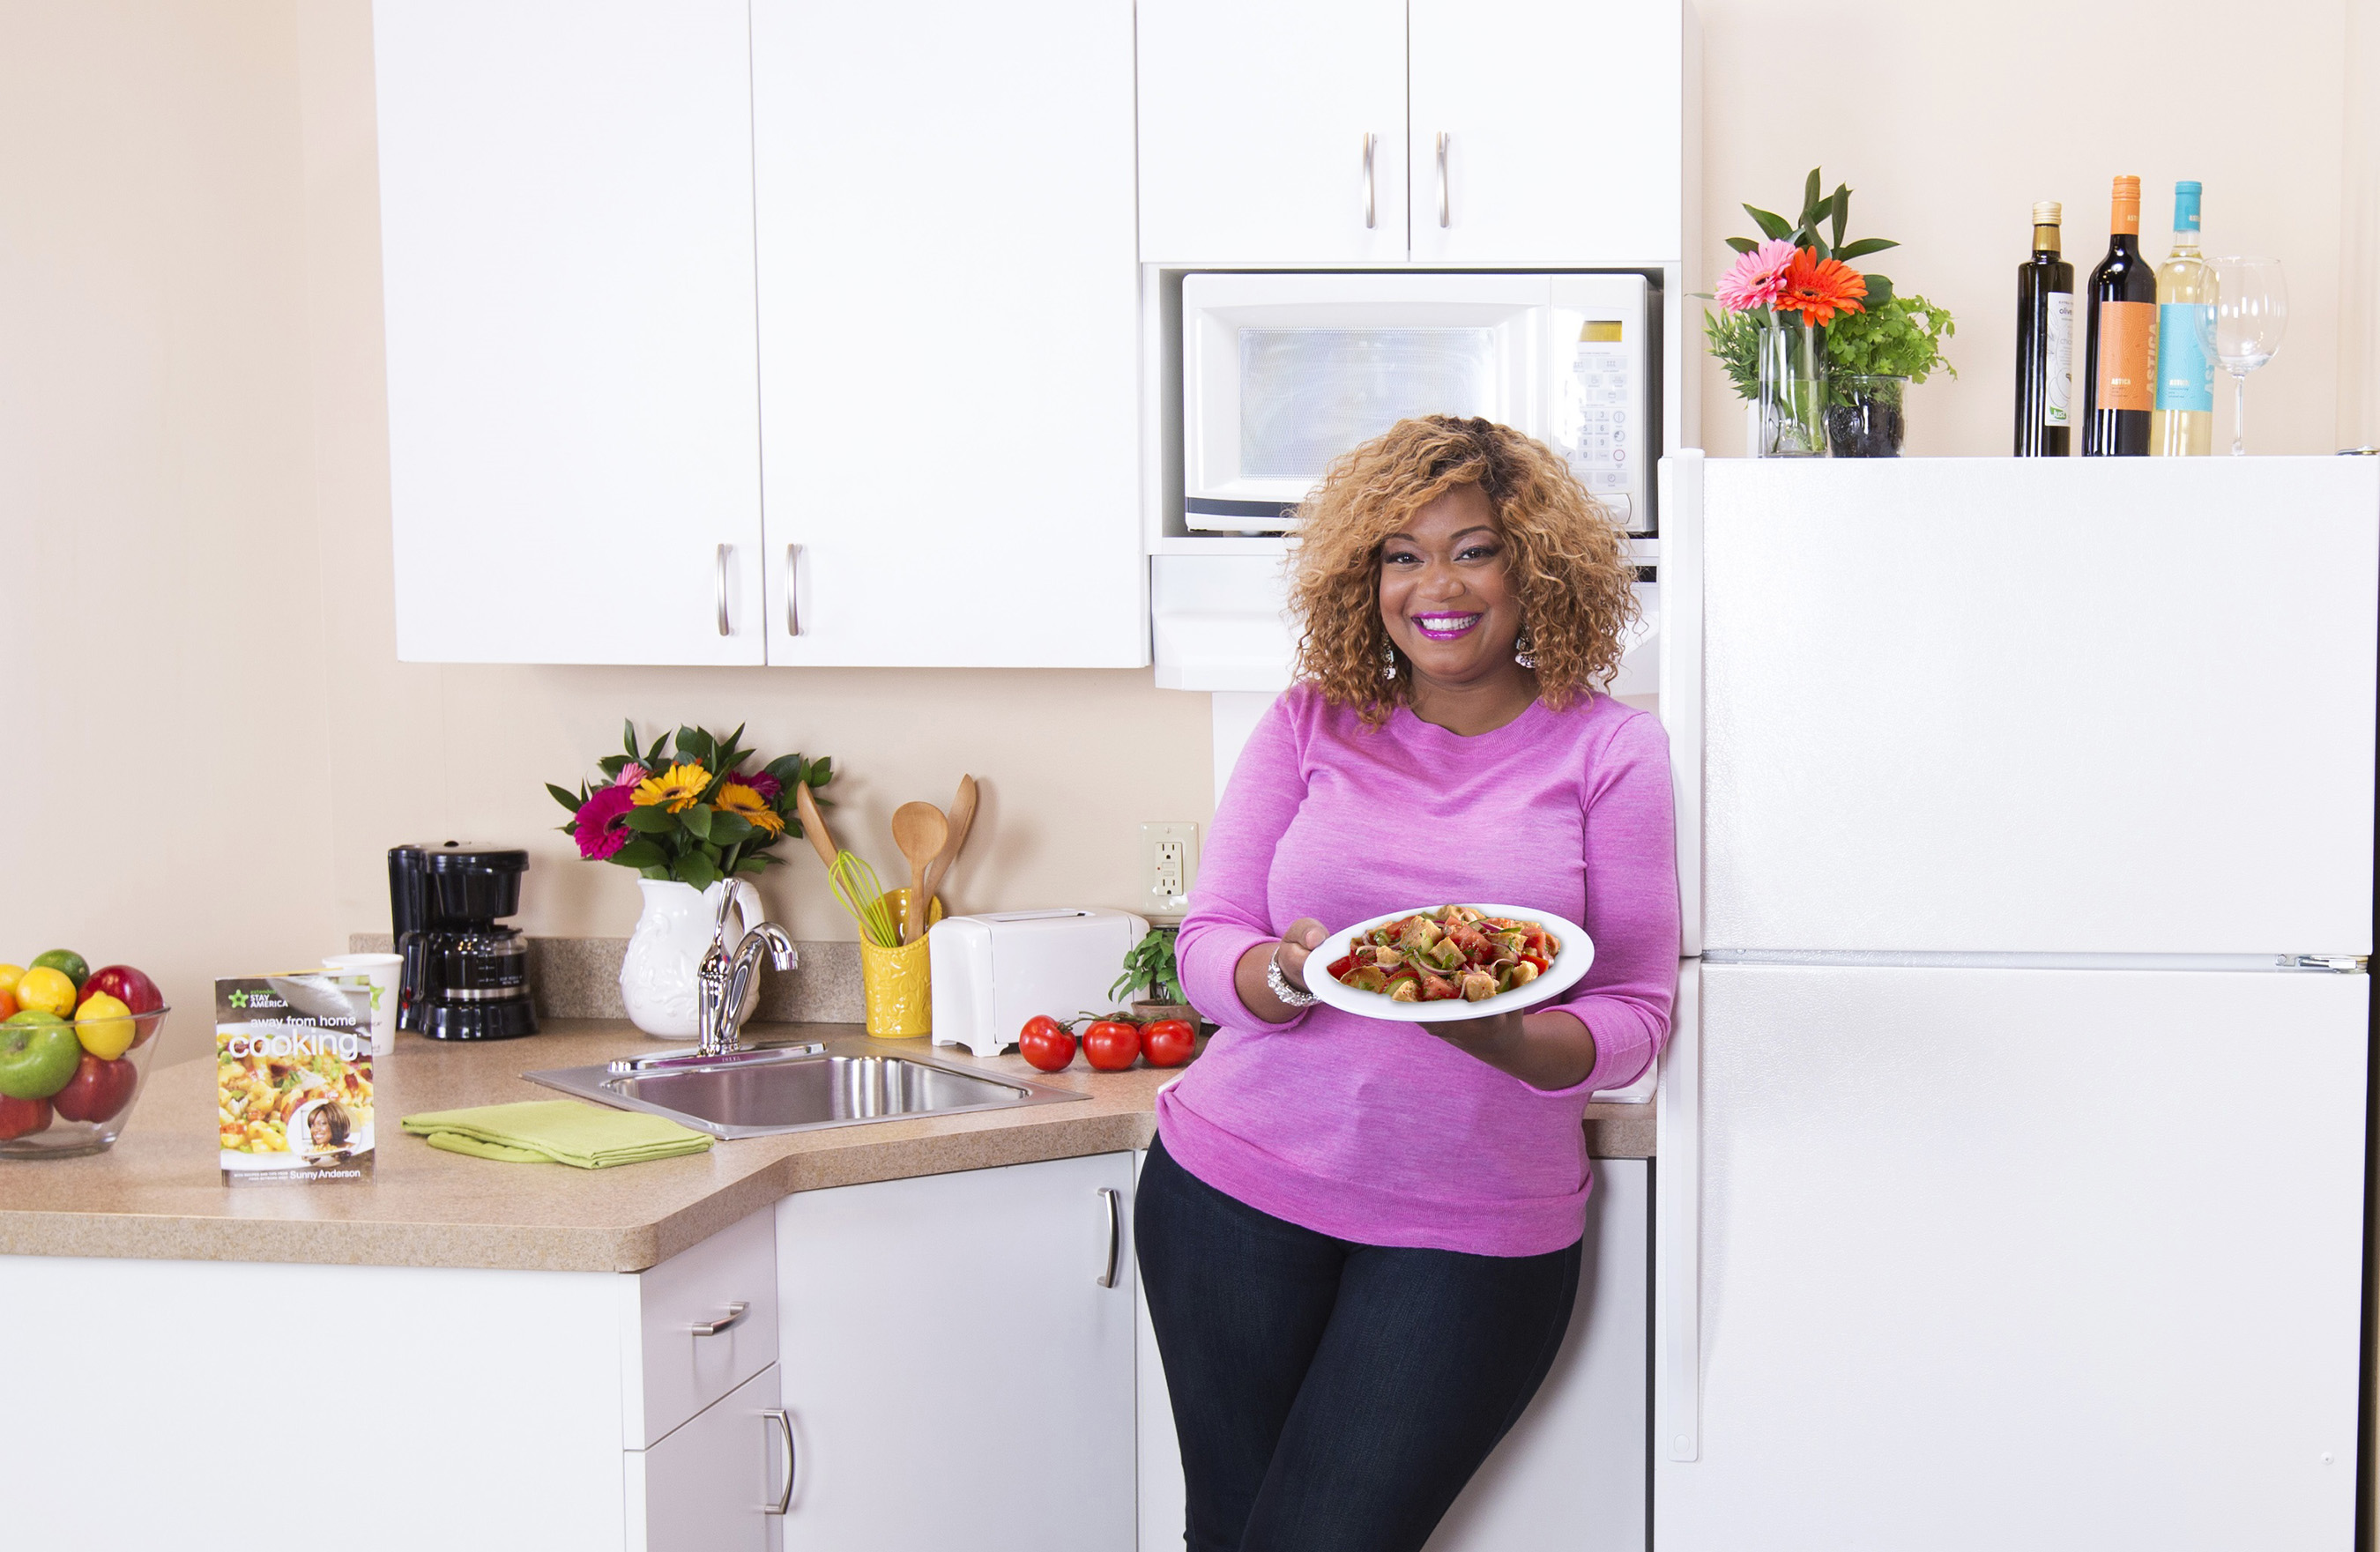 Sunny Anderson extended stay america partners with food network's™ sunny anderson